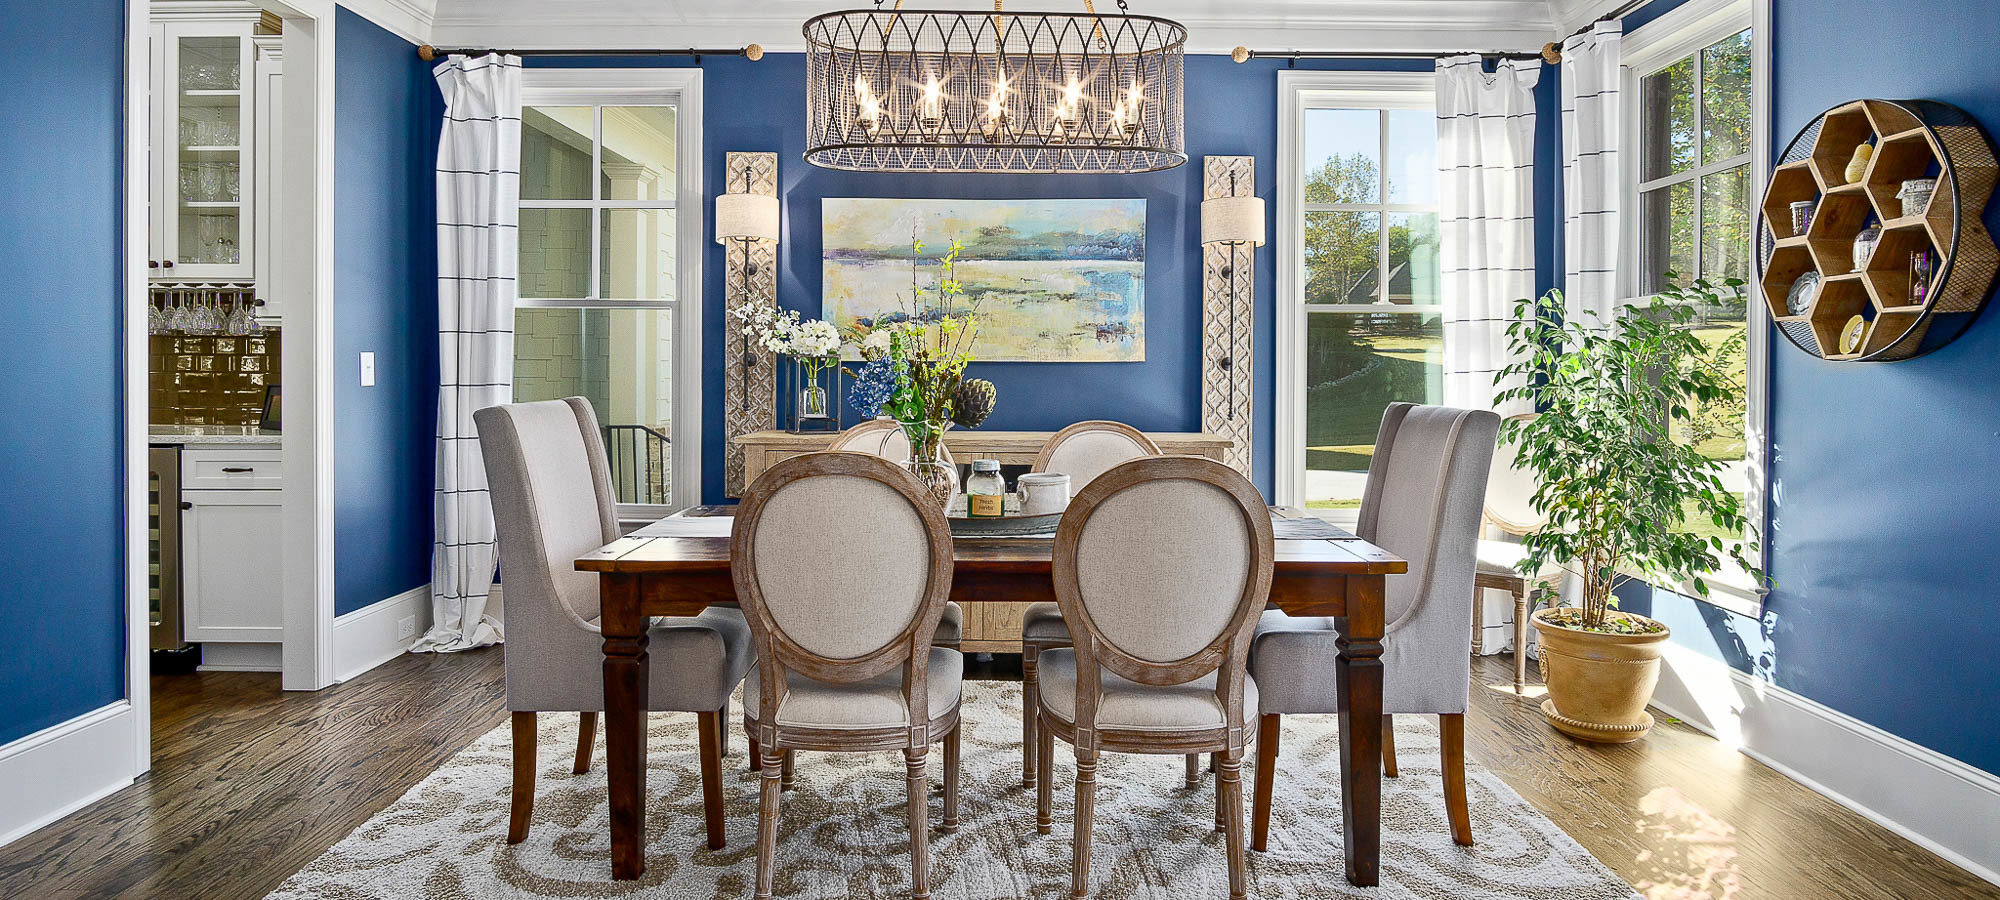 Traditional style dining room with bold blue painted walls, white trim and hardwood floors